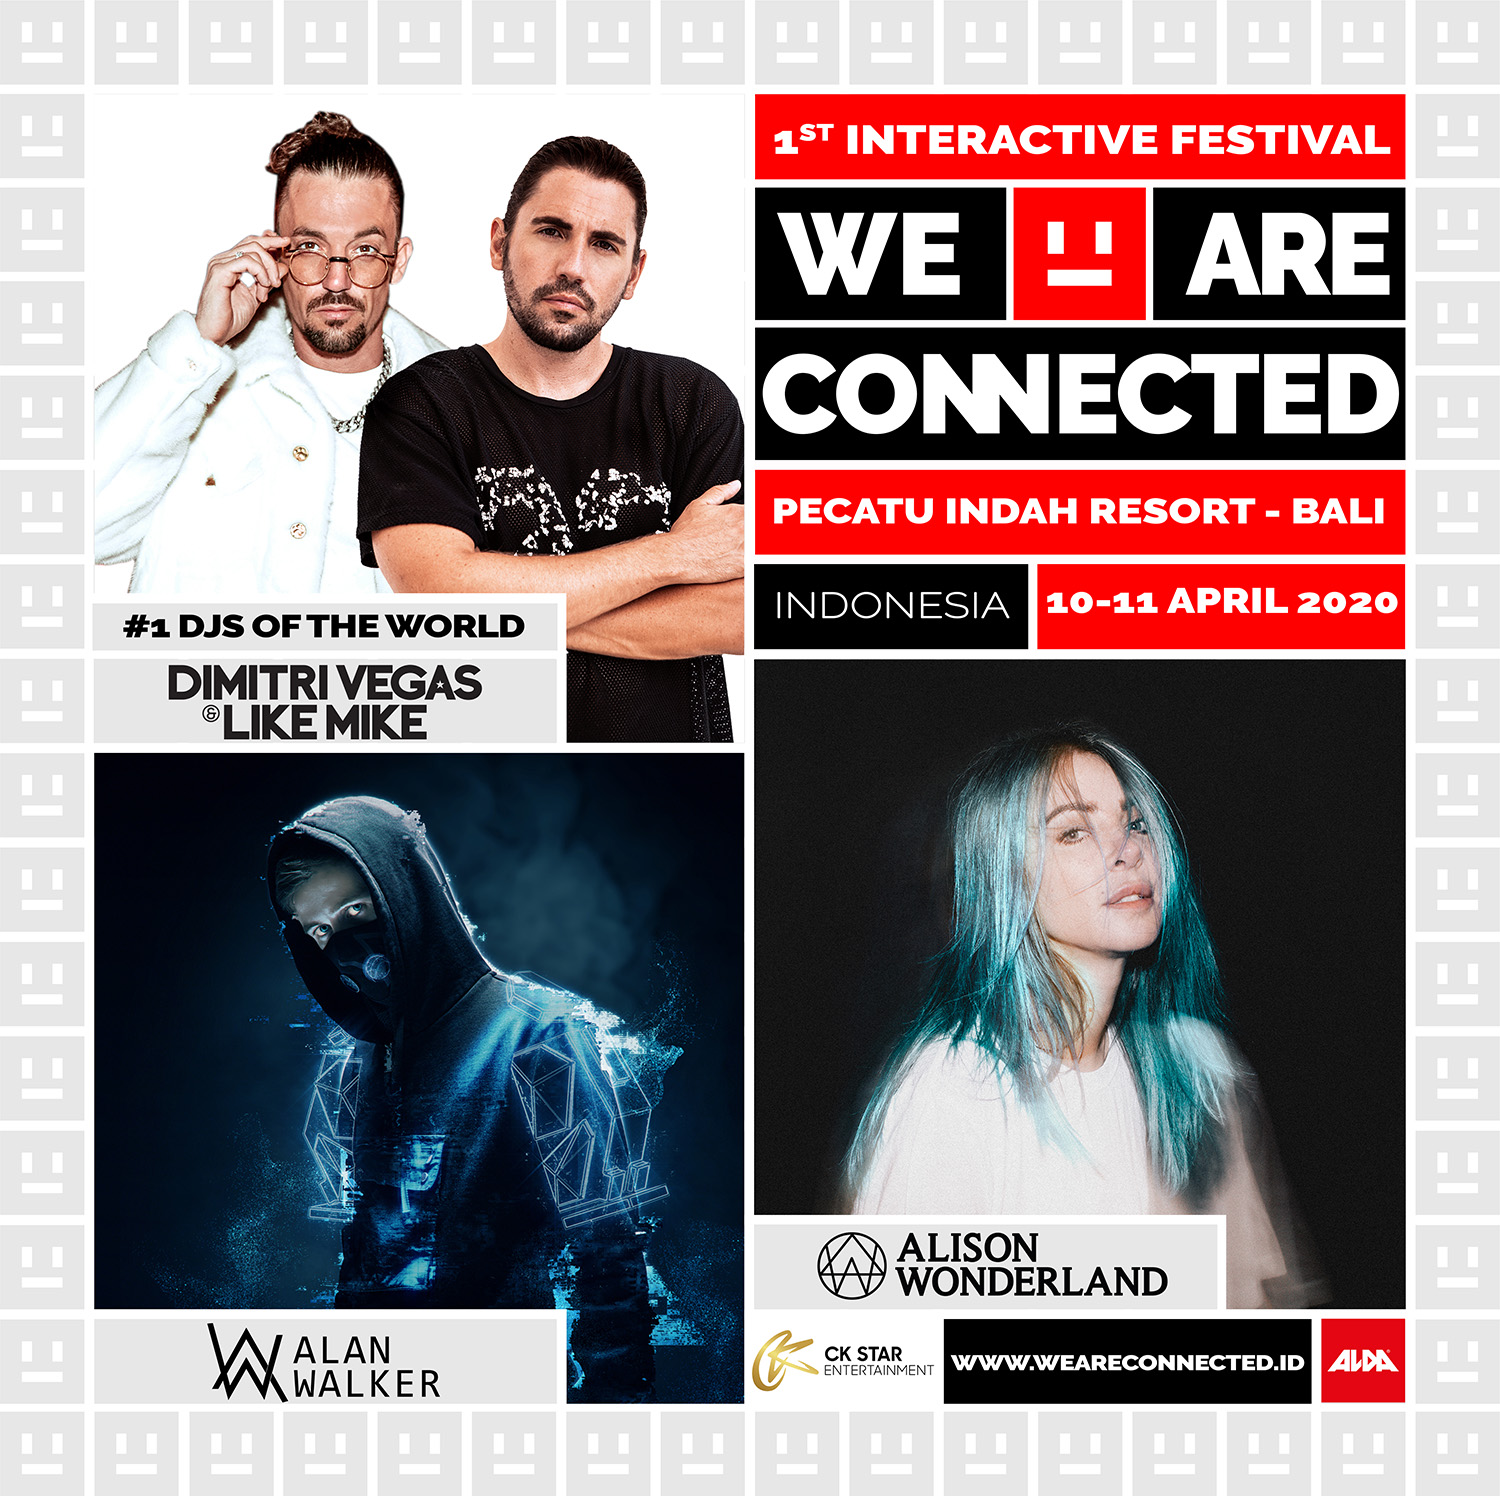 Harga Tiket Festival WAC - CK Star Entertainment presents We Are Connected Festival